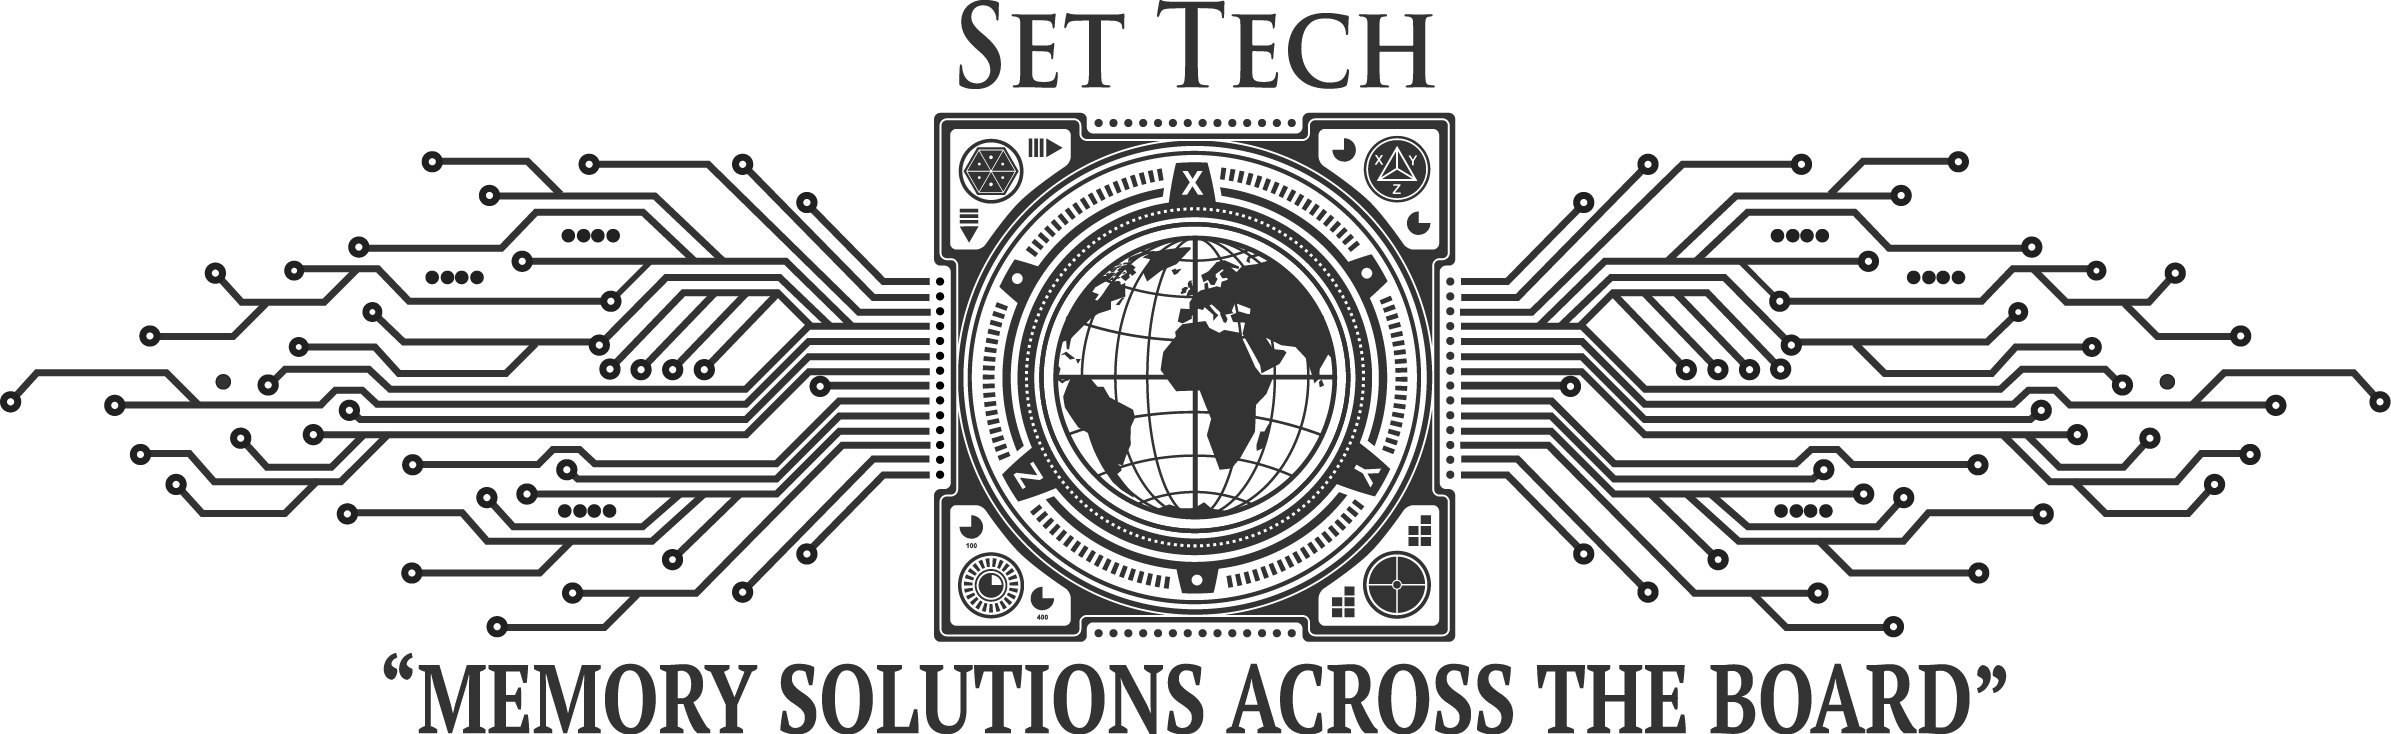 Set Tech: Memory Solutions Across The Board...